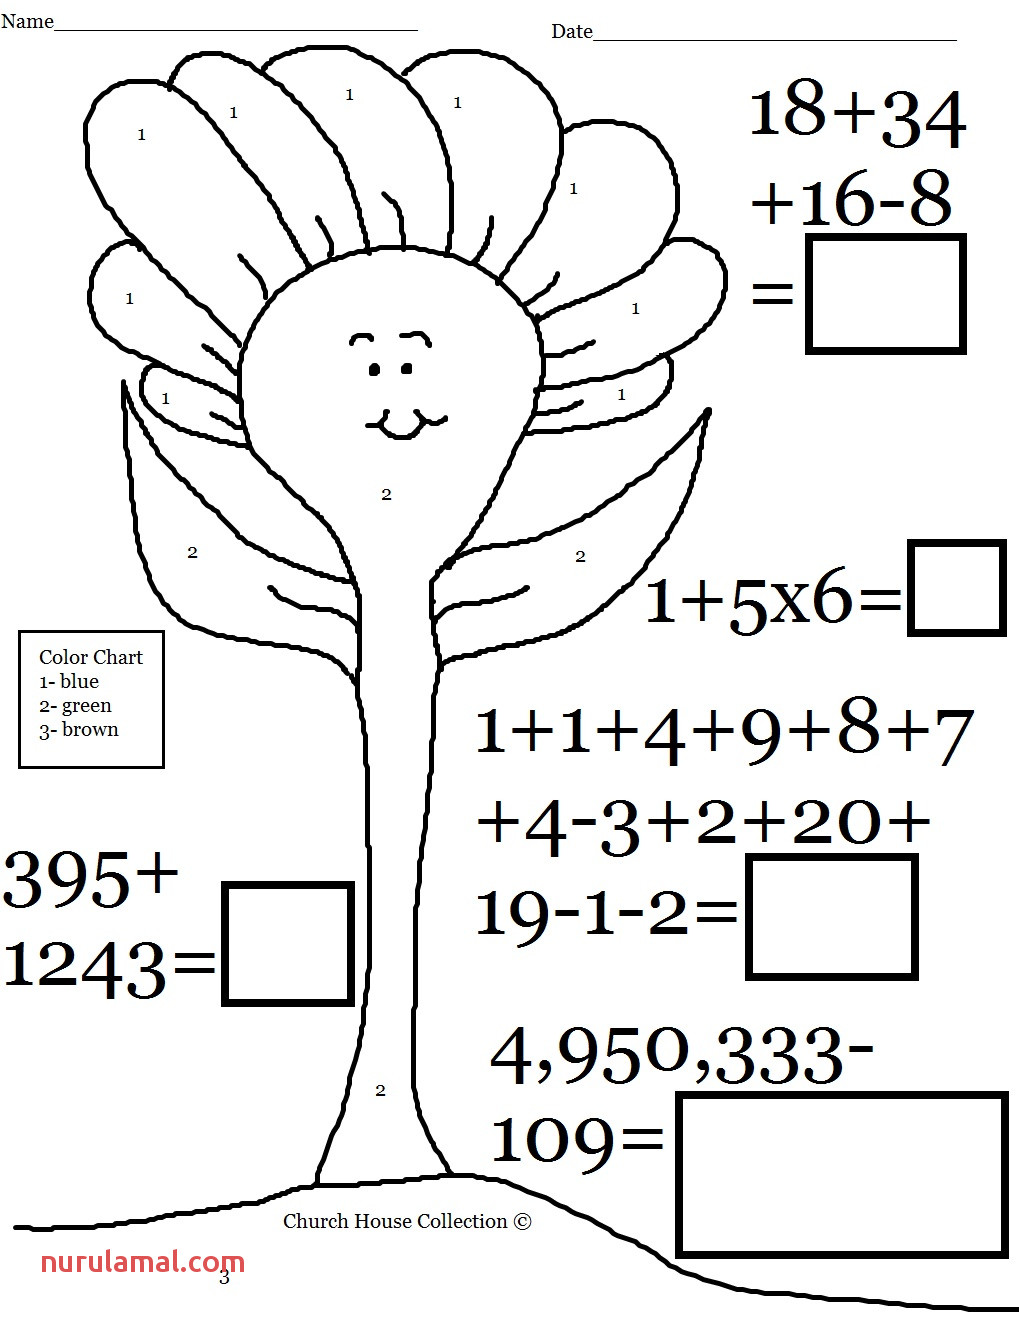 Printable Coloring Pages with Math Problems Pusat Hobi